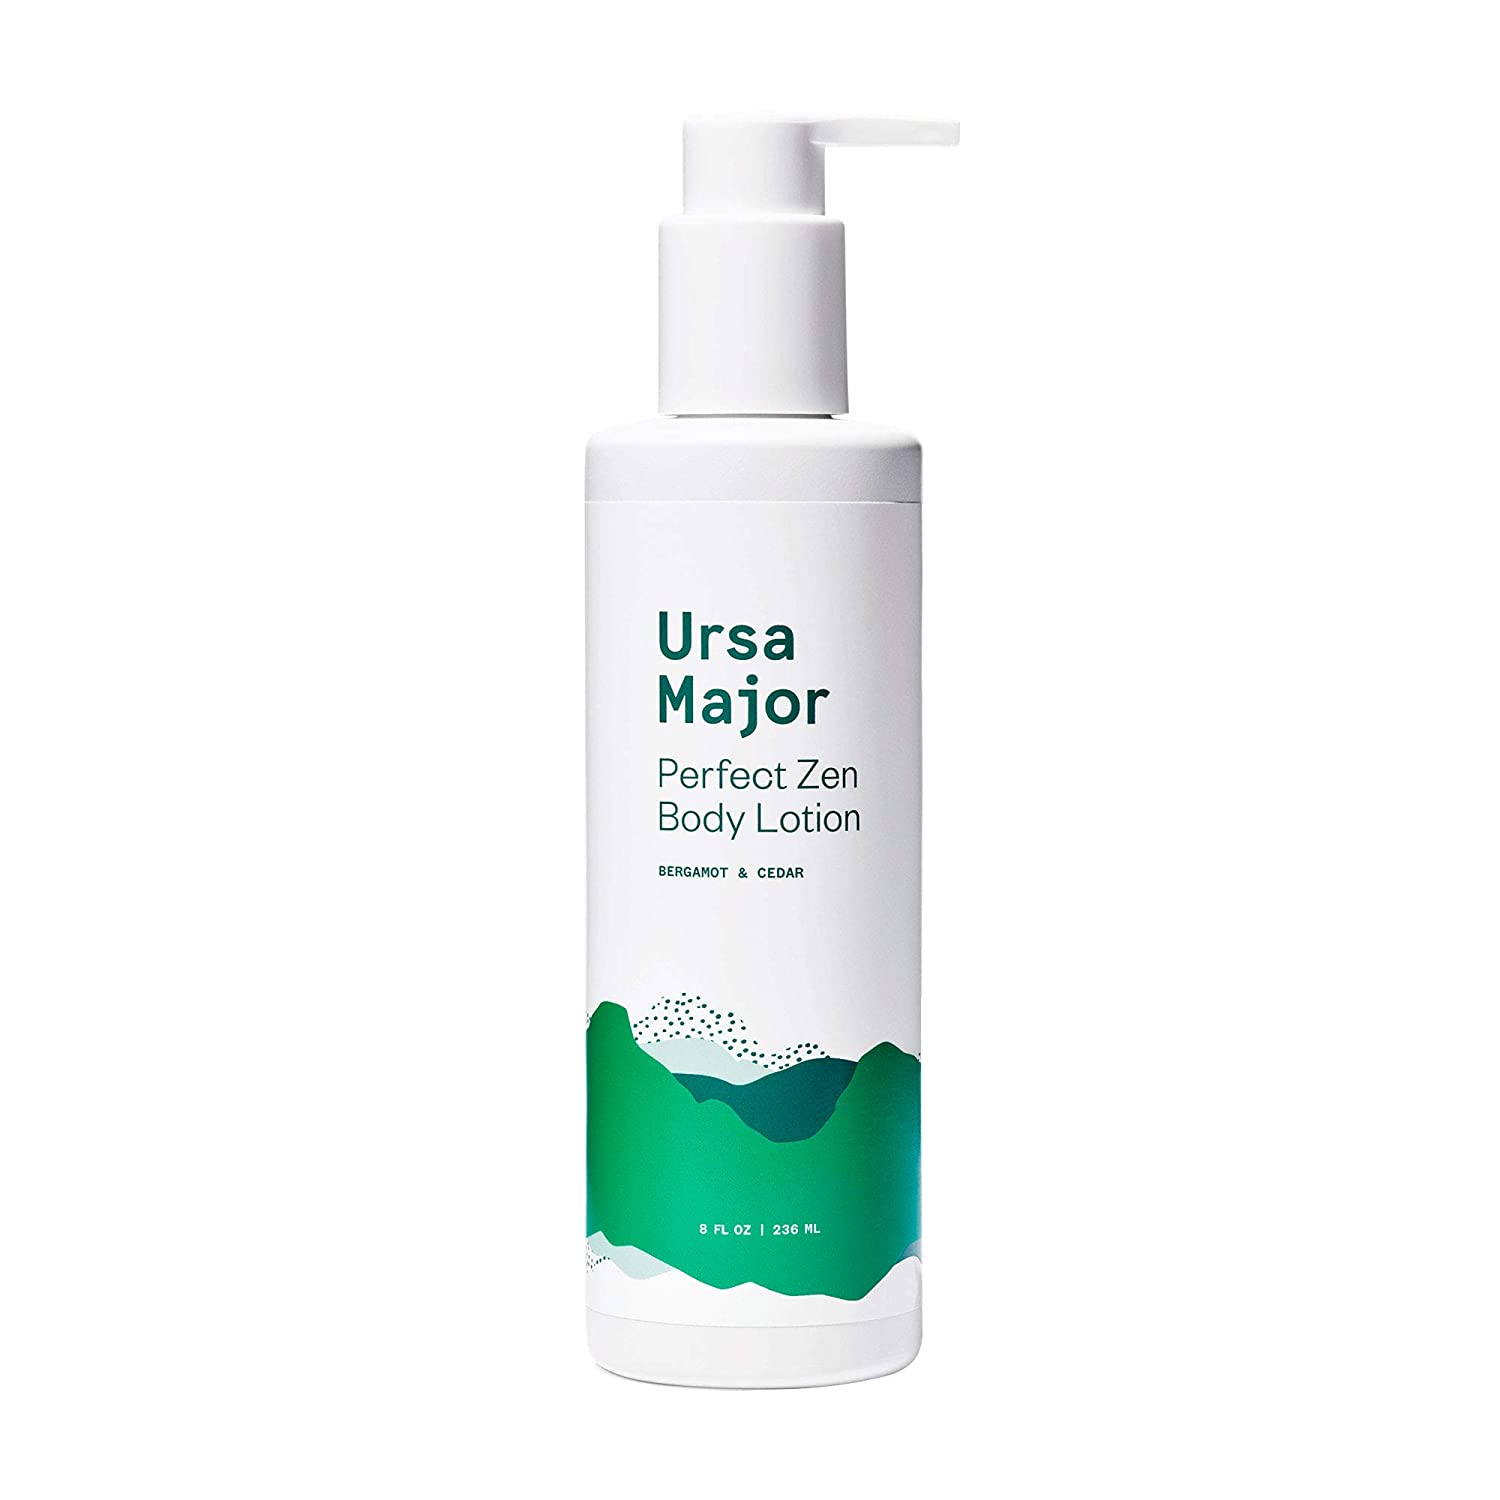 Ursa Major Natural Body Lotion   Vegan and Cruelty-Free   Moisturizes, Soothes and Hydrates Skin   Formulated for Men & Women   8 ounces